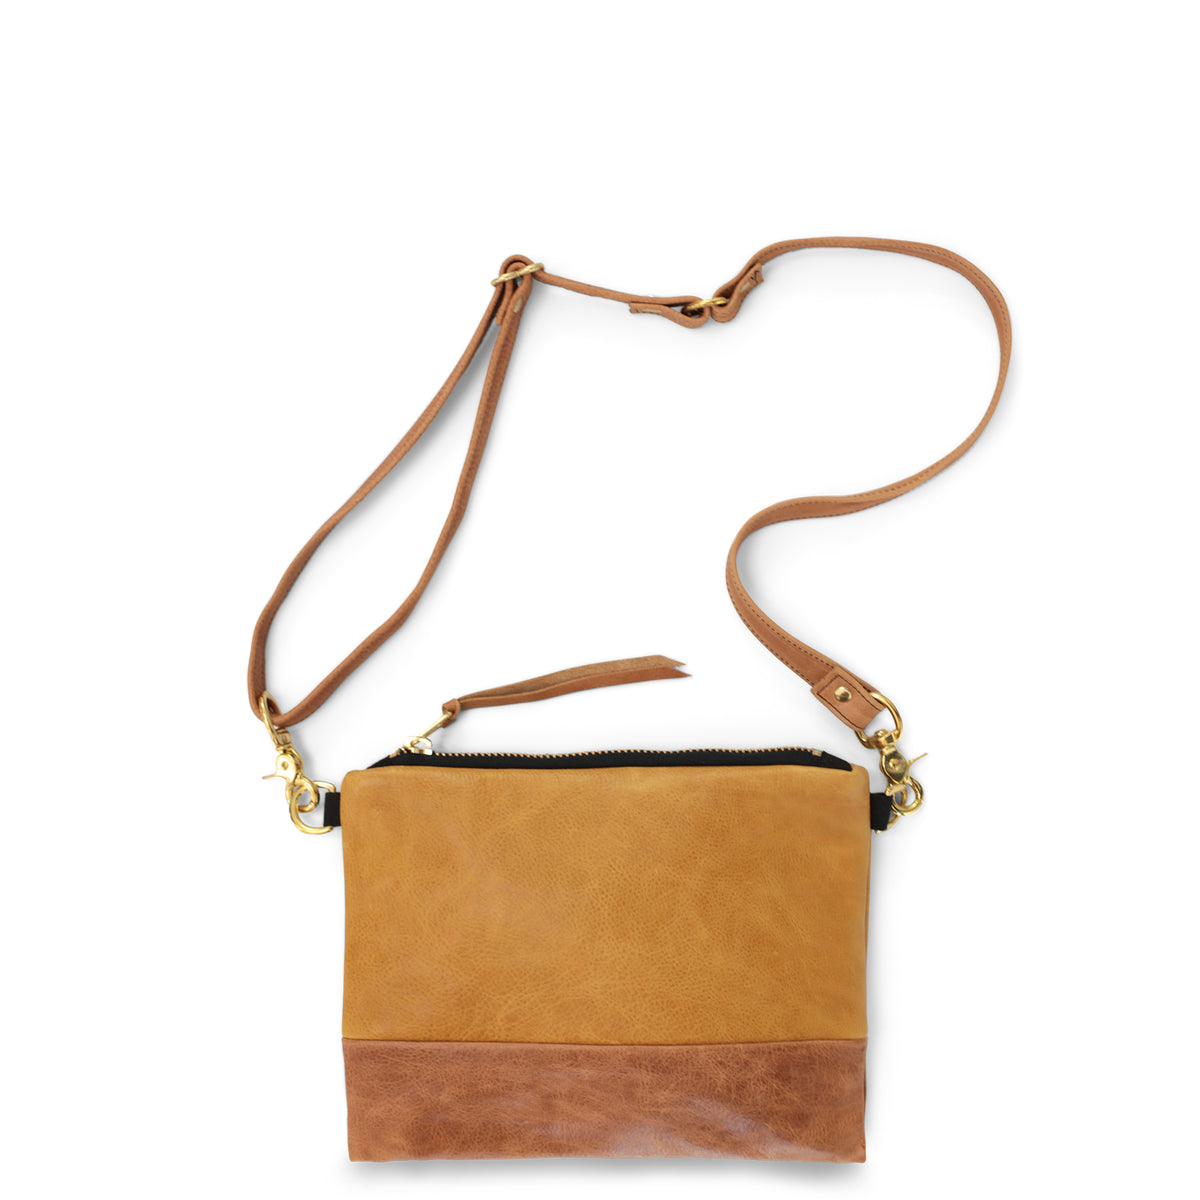 The Vida Crossbody - Fallbrook